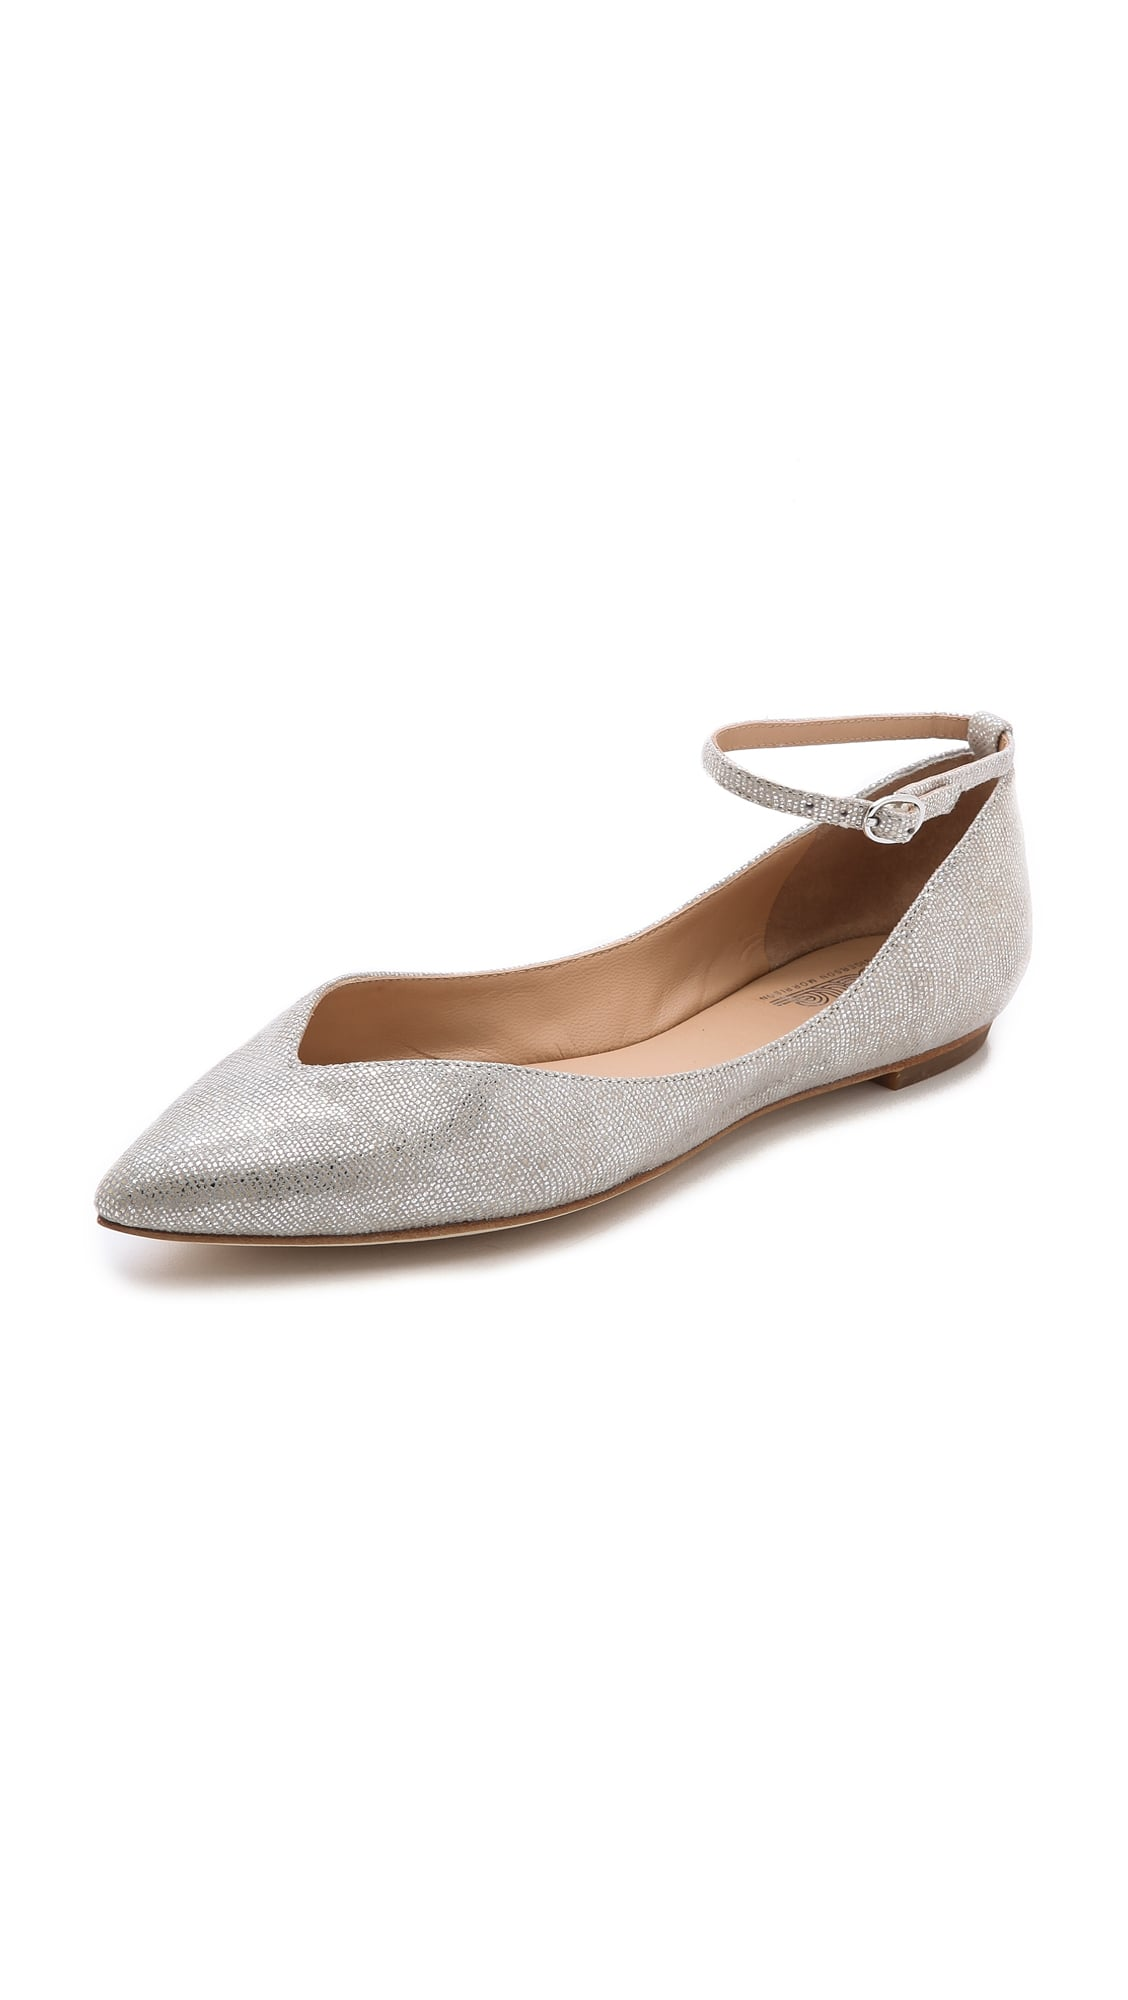 Belle by Sigerson Morrison Pointed-Toe Flats